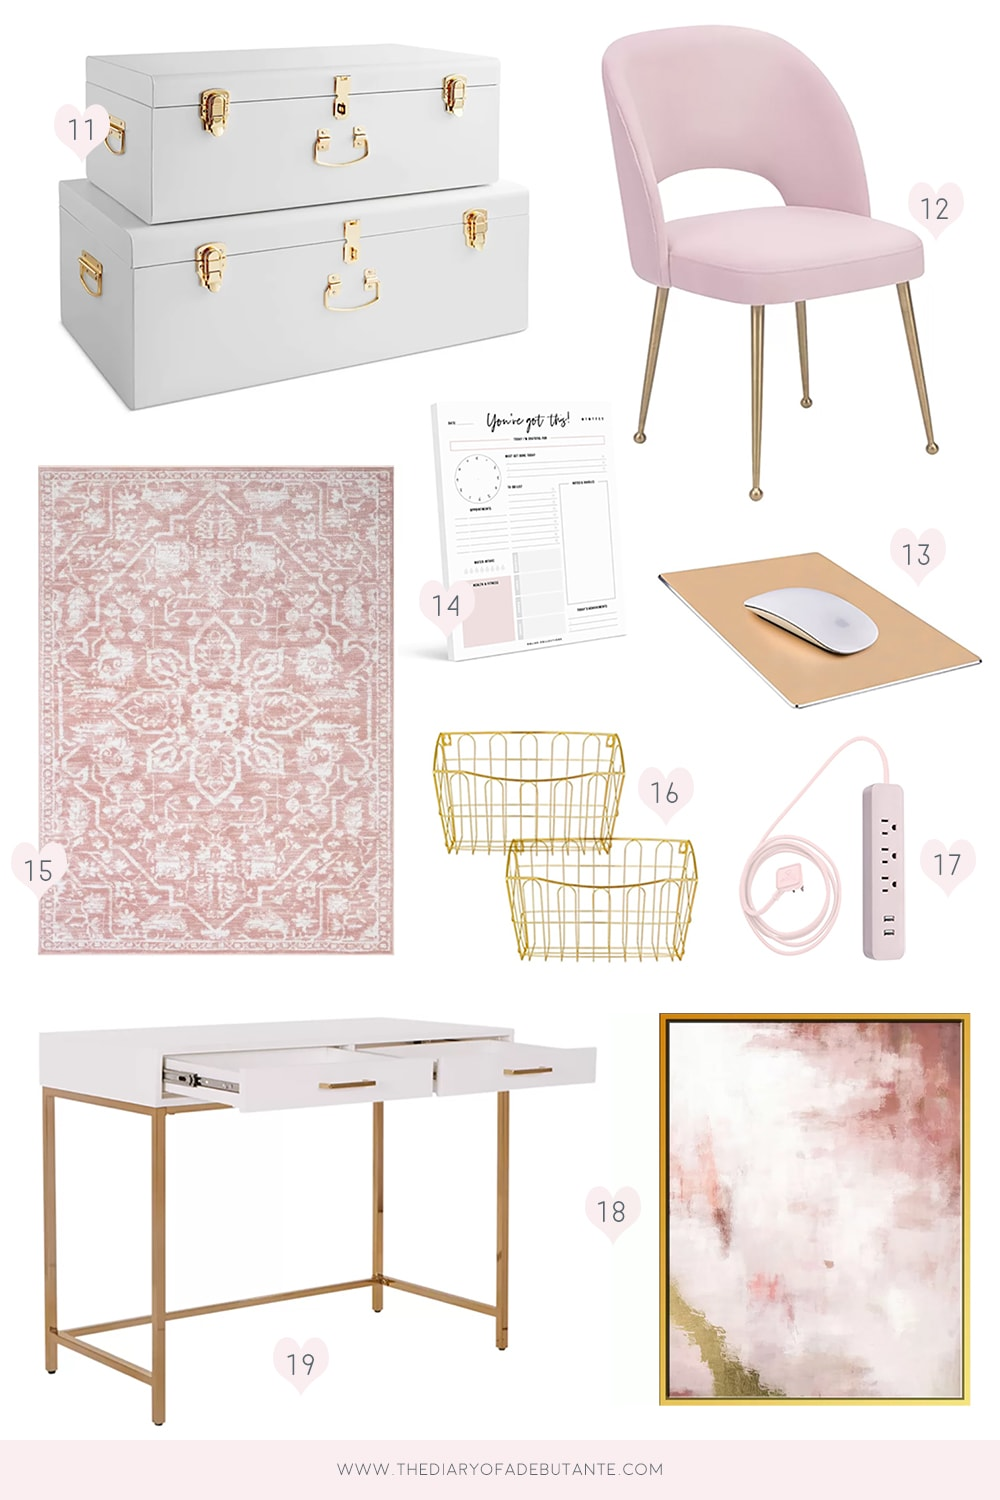 Affordable home decor blogger Stephanie Ziajka shares gold and pink office decor ideas on Diary of a Debutante